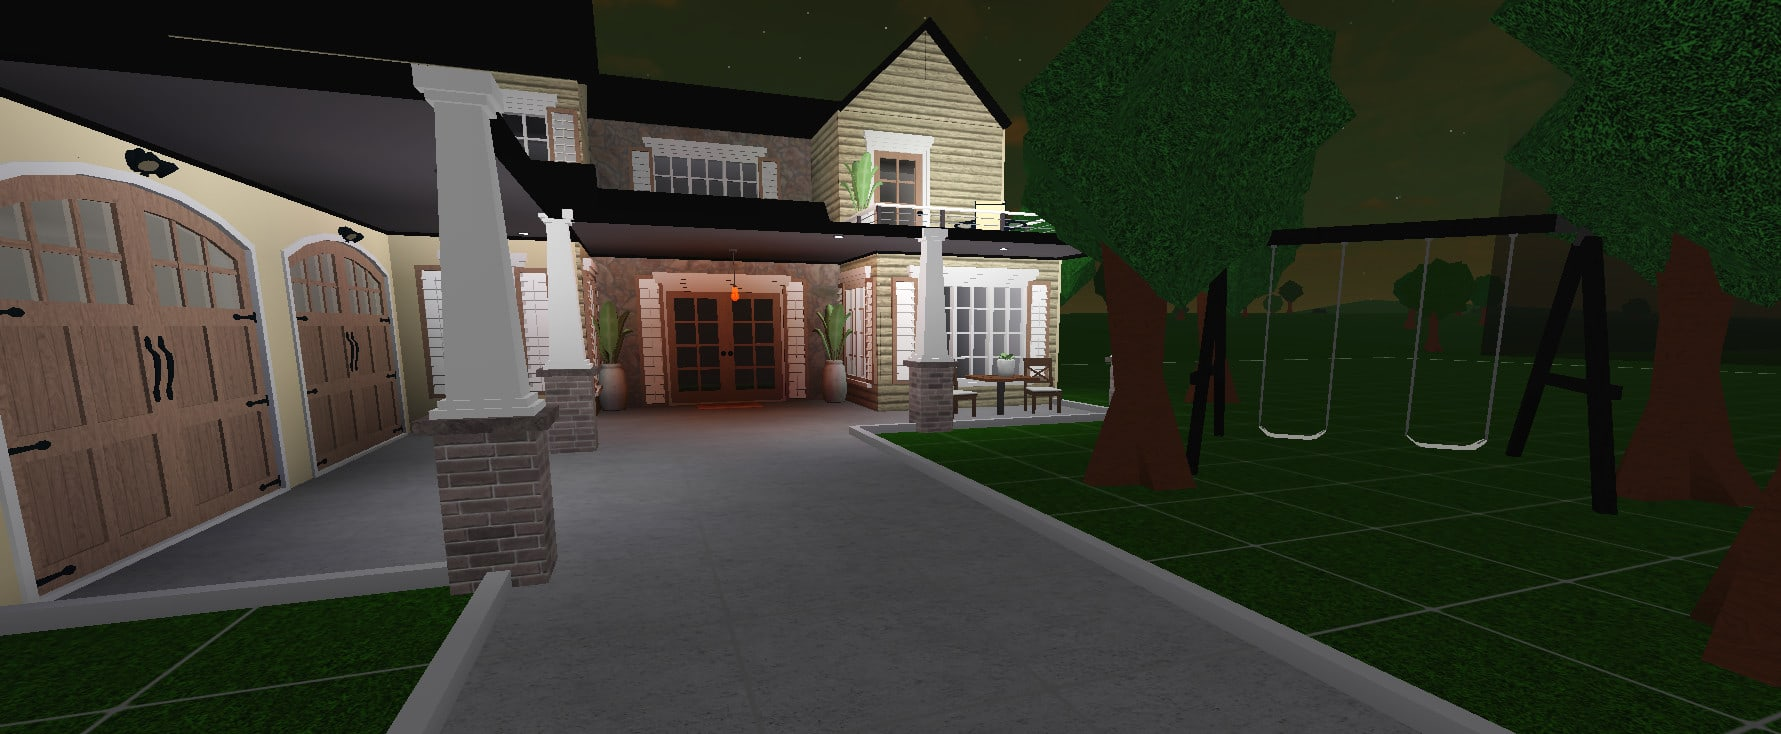 Build You Anything You Want In Bloxburg By Katrina544